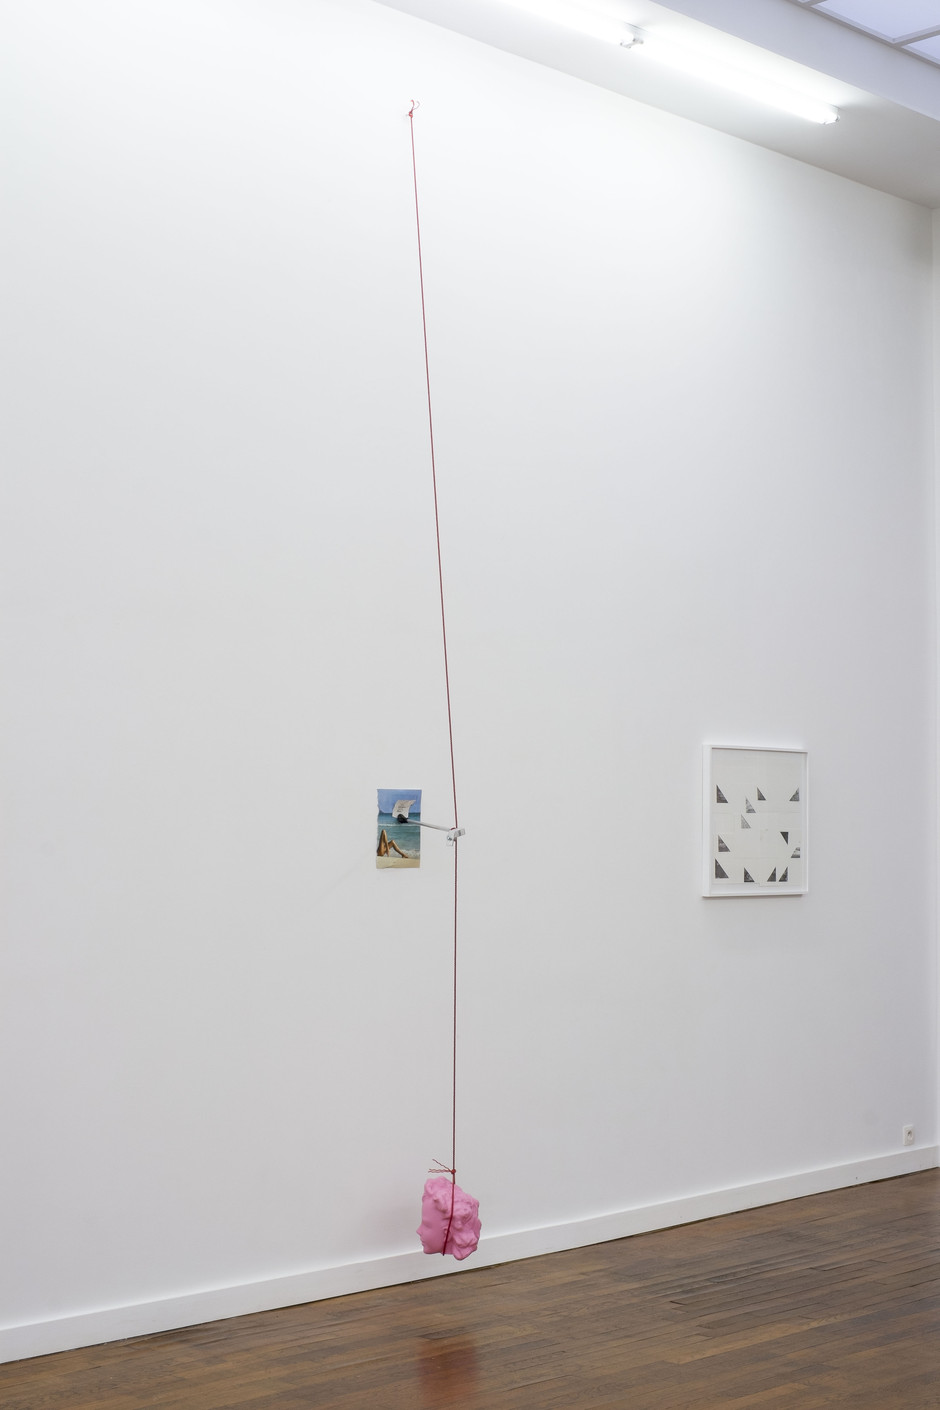 Exhibition view Sirens